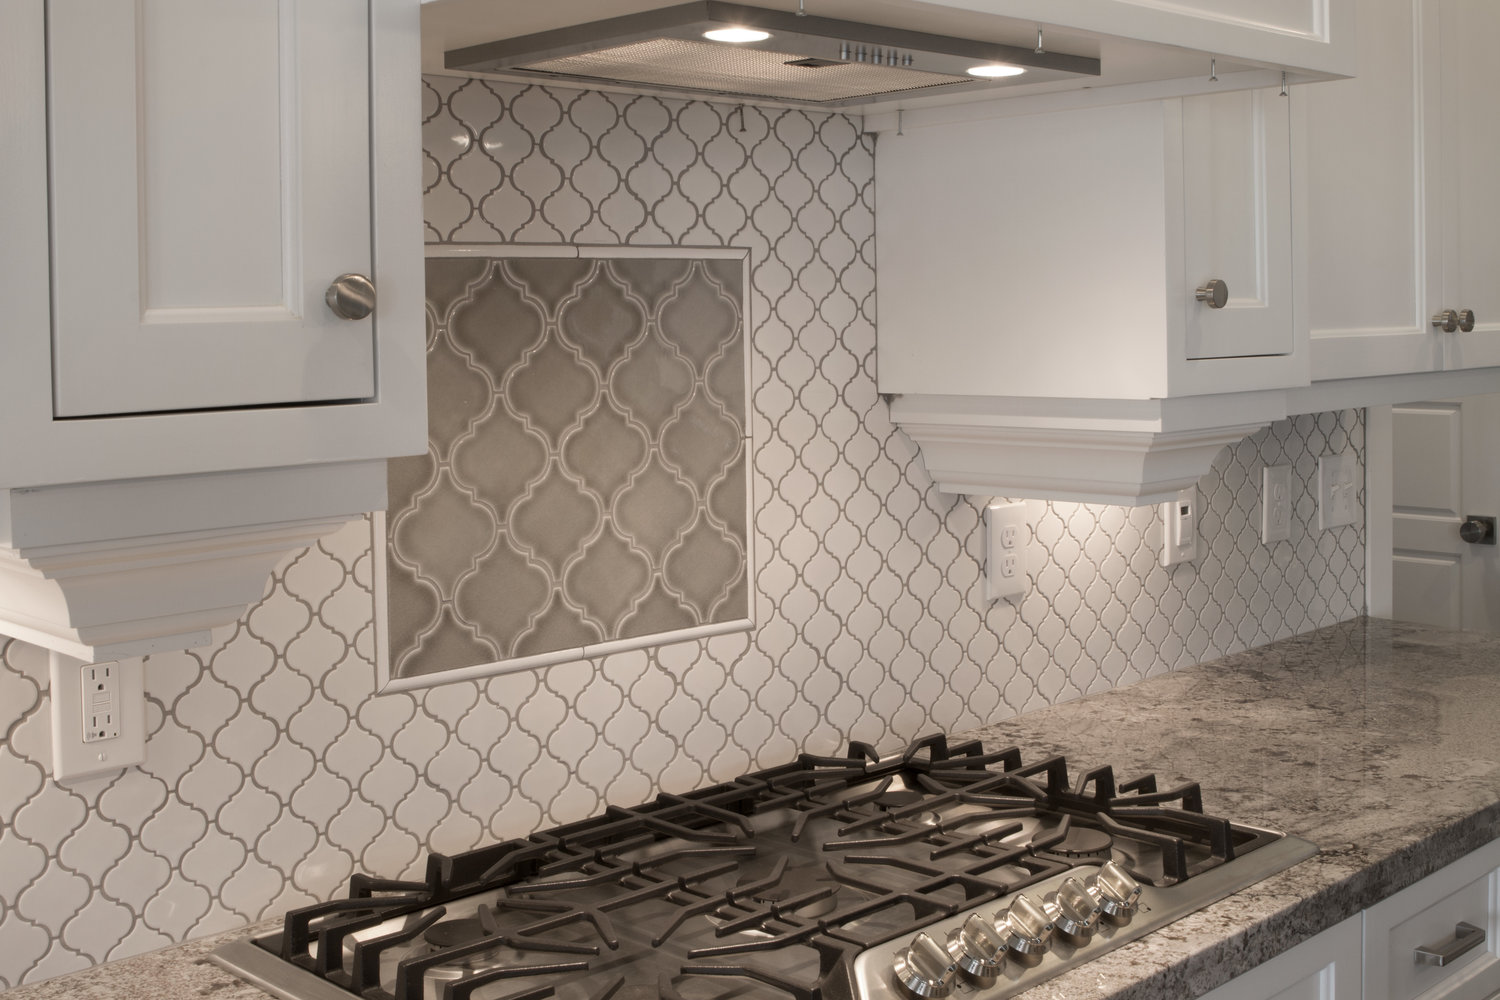 New Kitchen & Bathroom Tile Backsplash Installation - Rigby — 5 Star